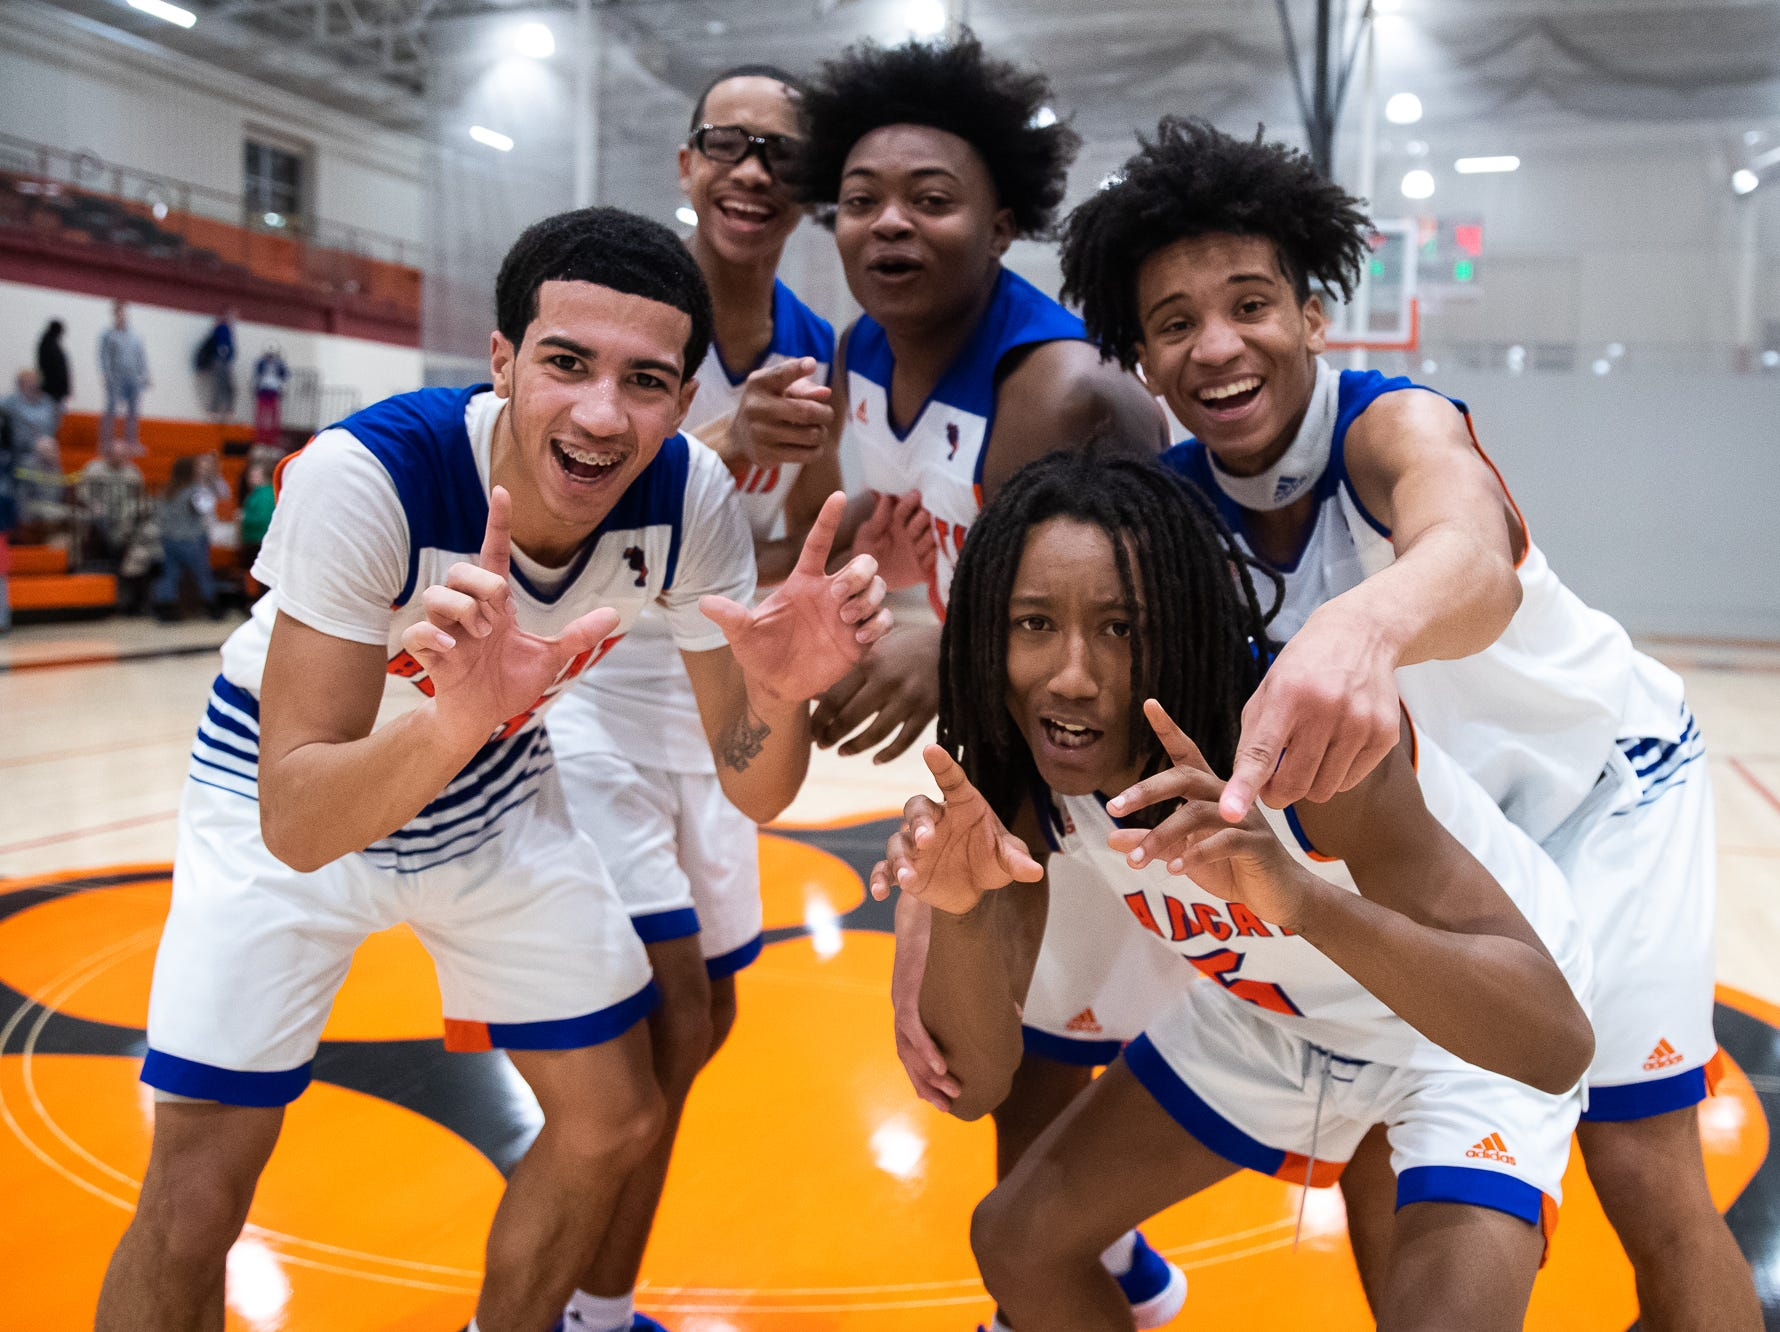 The York High Bearcats celebrate after winning their YAIAA quarterfinal against Dover, Saturday, Feb. 9, 2019, at Central York High School. The York High Bearcats defeated the Dover Eagles 75-53.